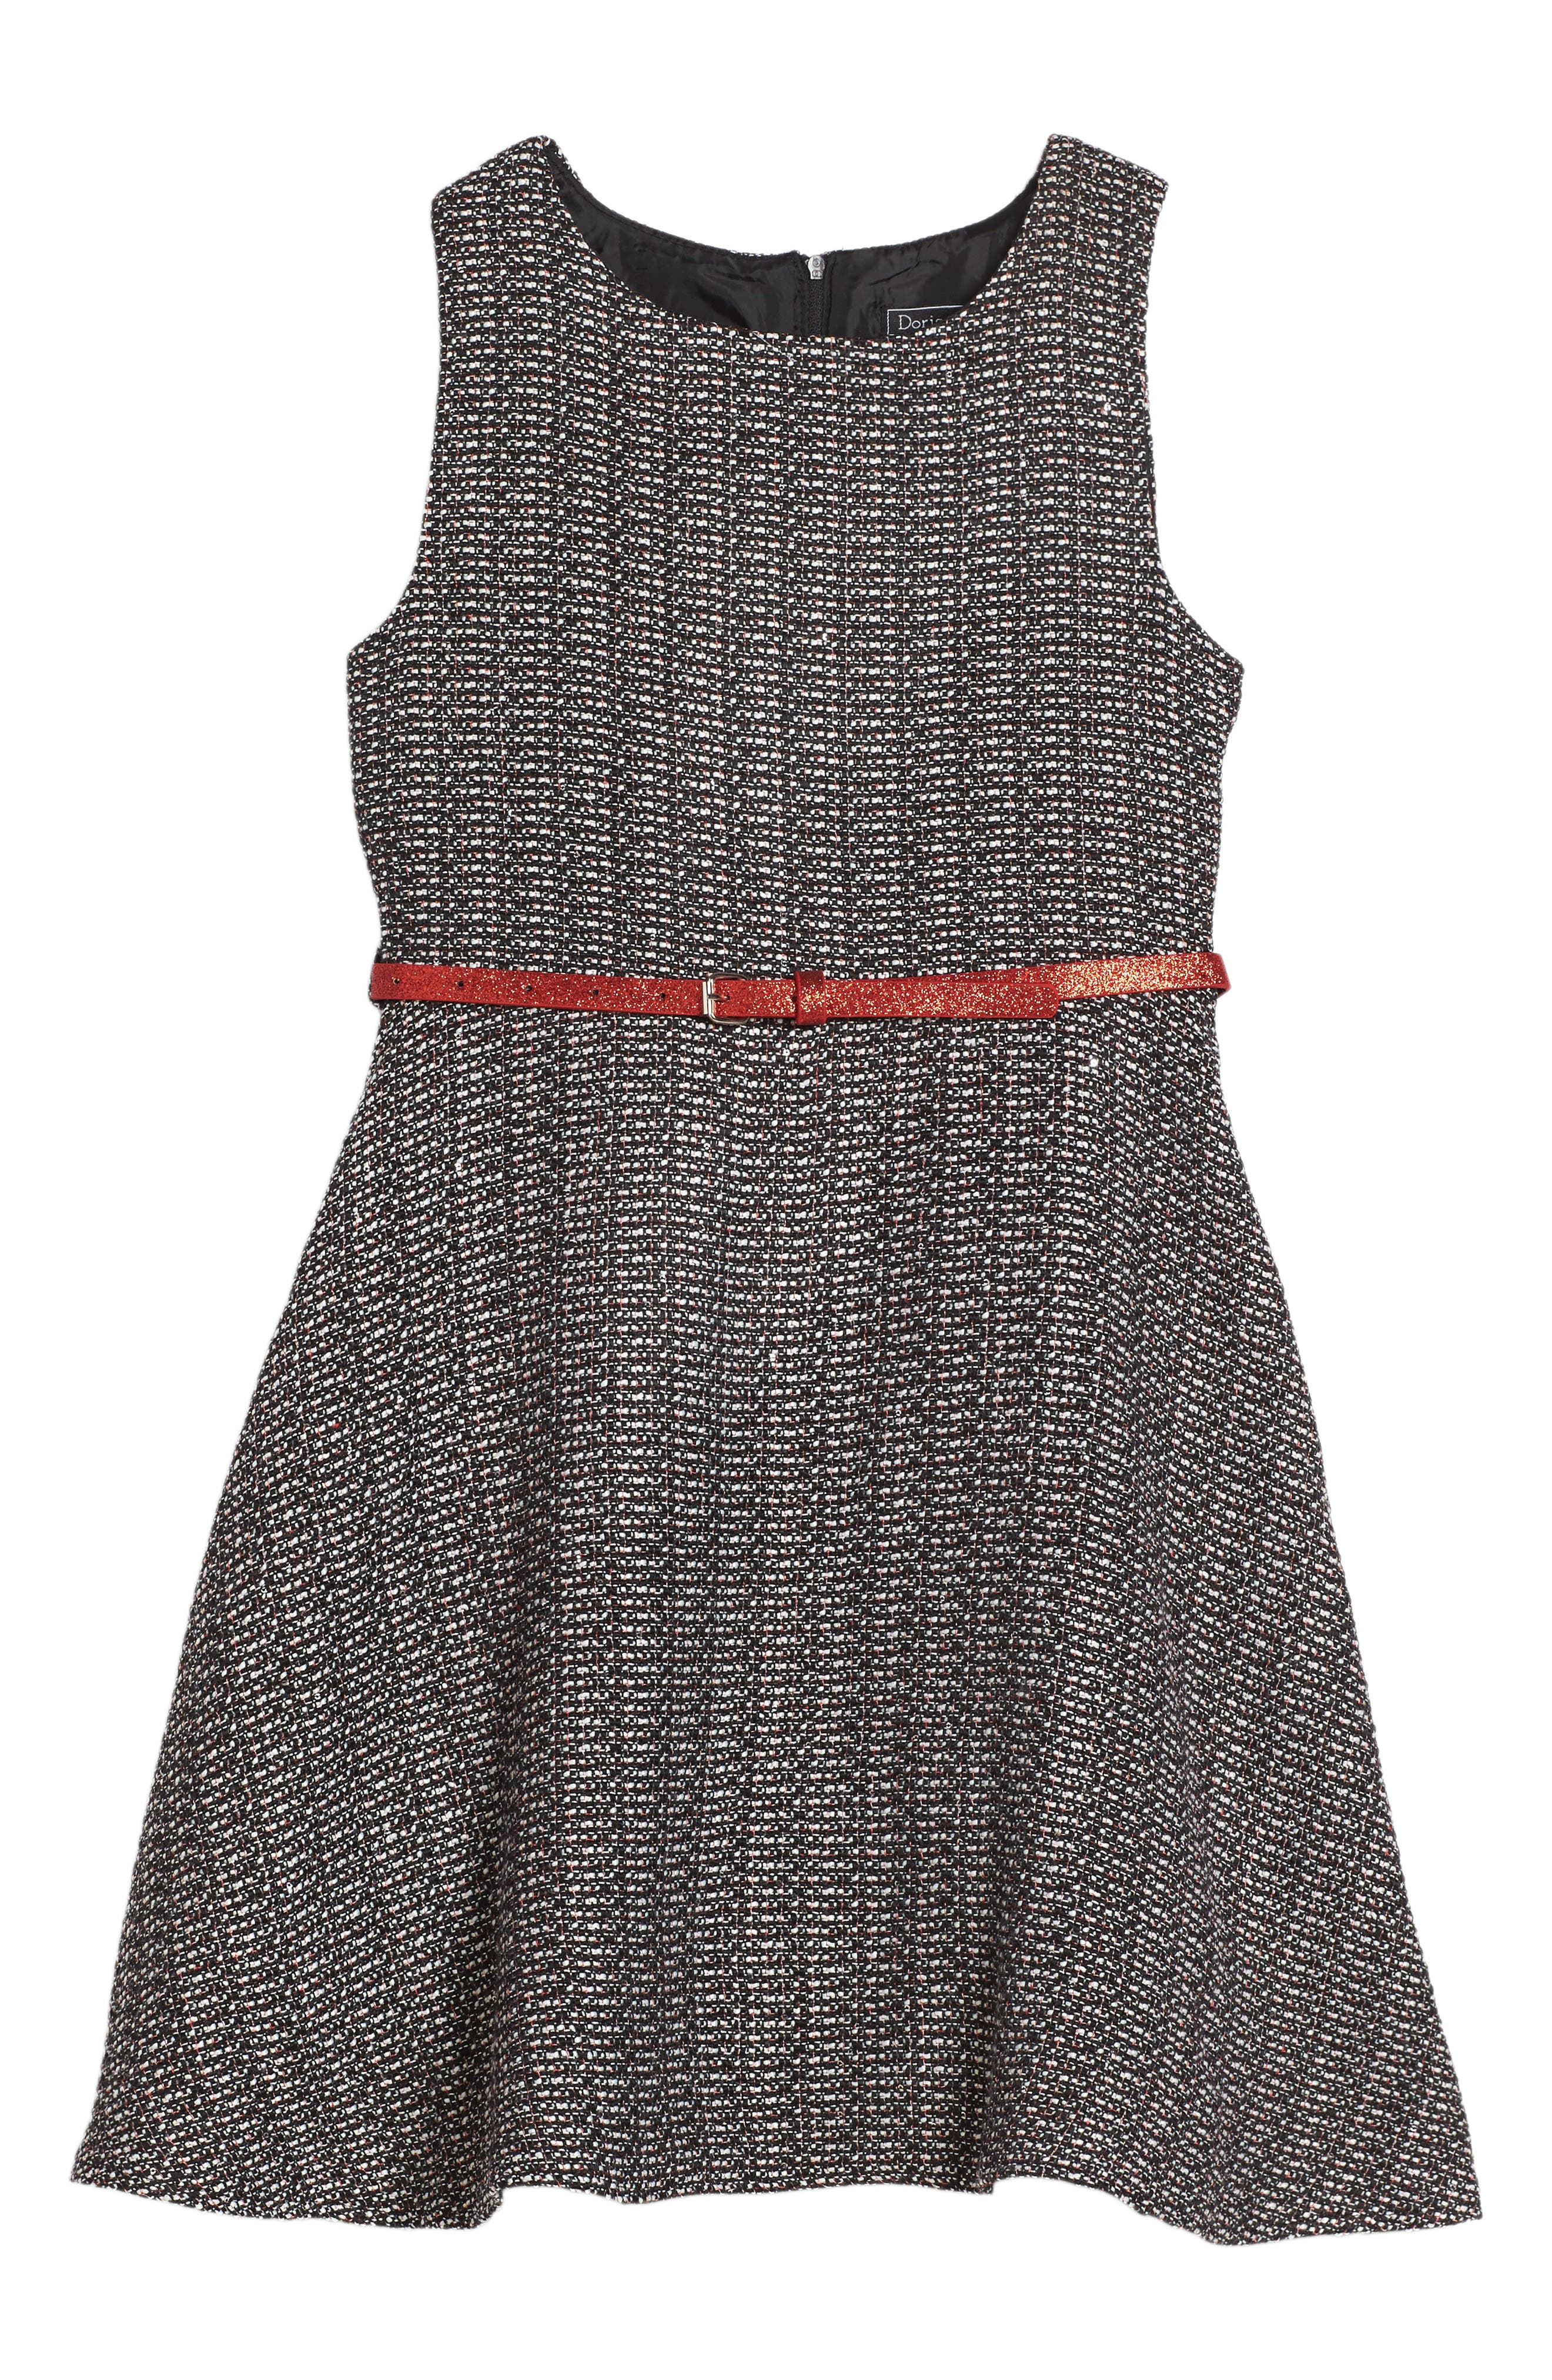 Dorissa Ella Tweed Dress (Big Girls)